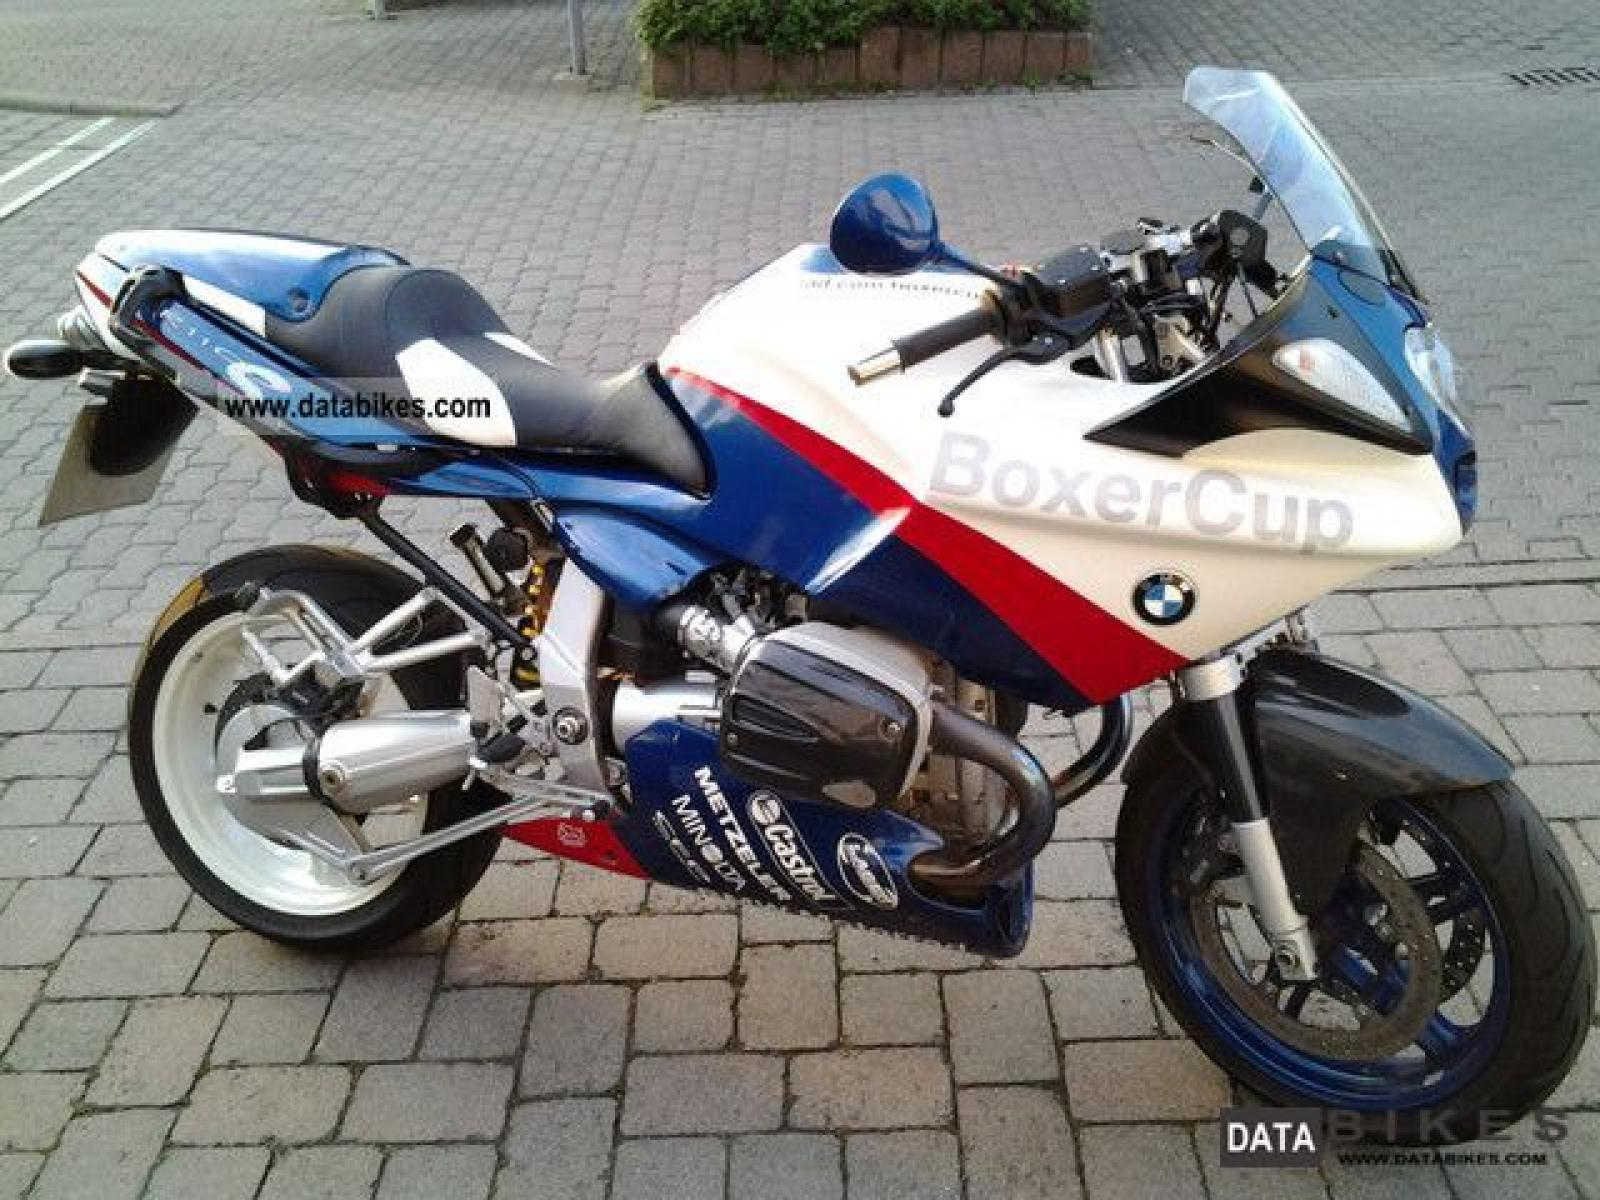 BMW R1100S BoxerCup Replika images #12992